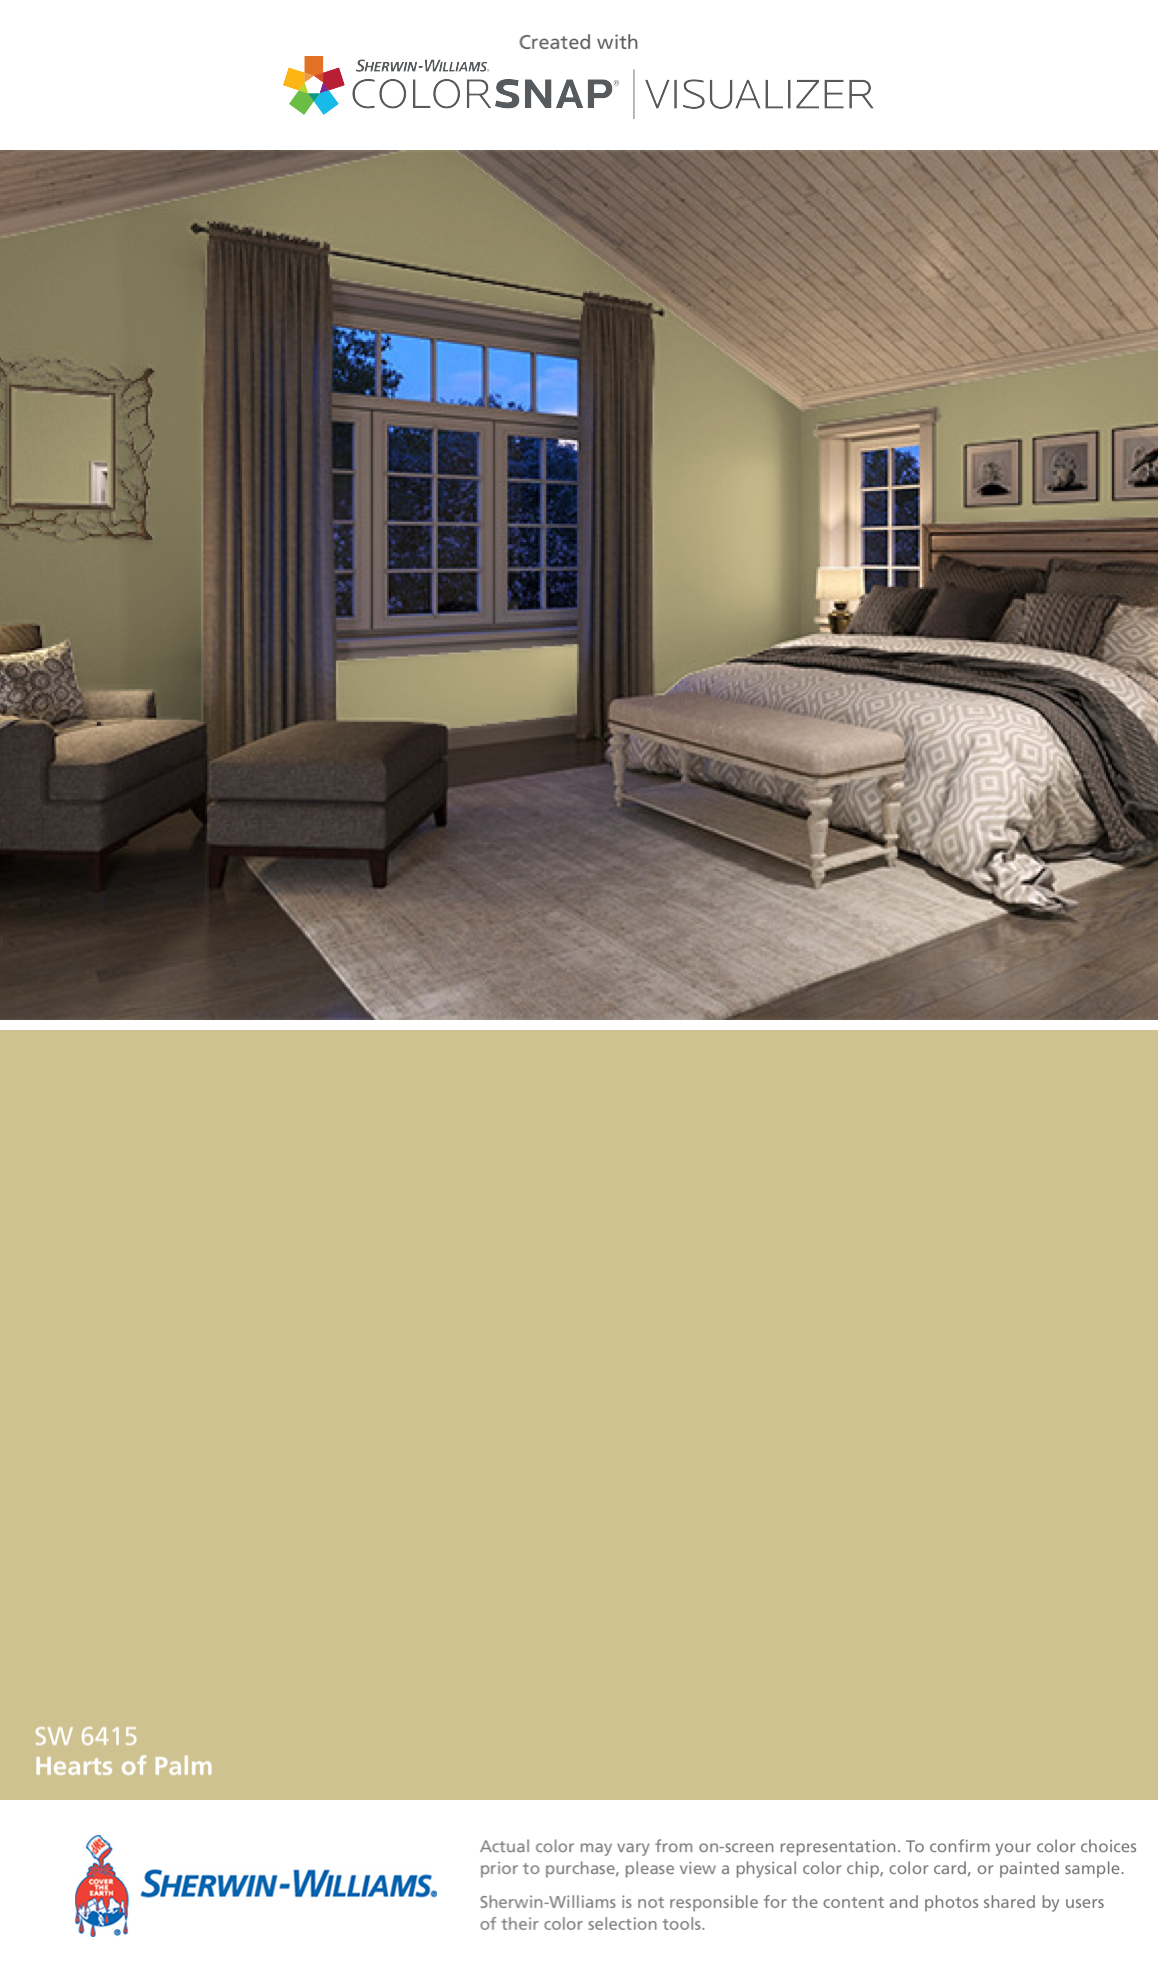 I found this color with ColorSnap® Visualizer for iPhone by Sherwin-Williams: Hearts of Palm (SW 6415).